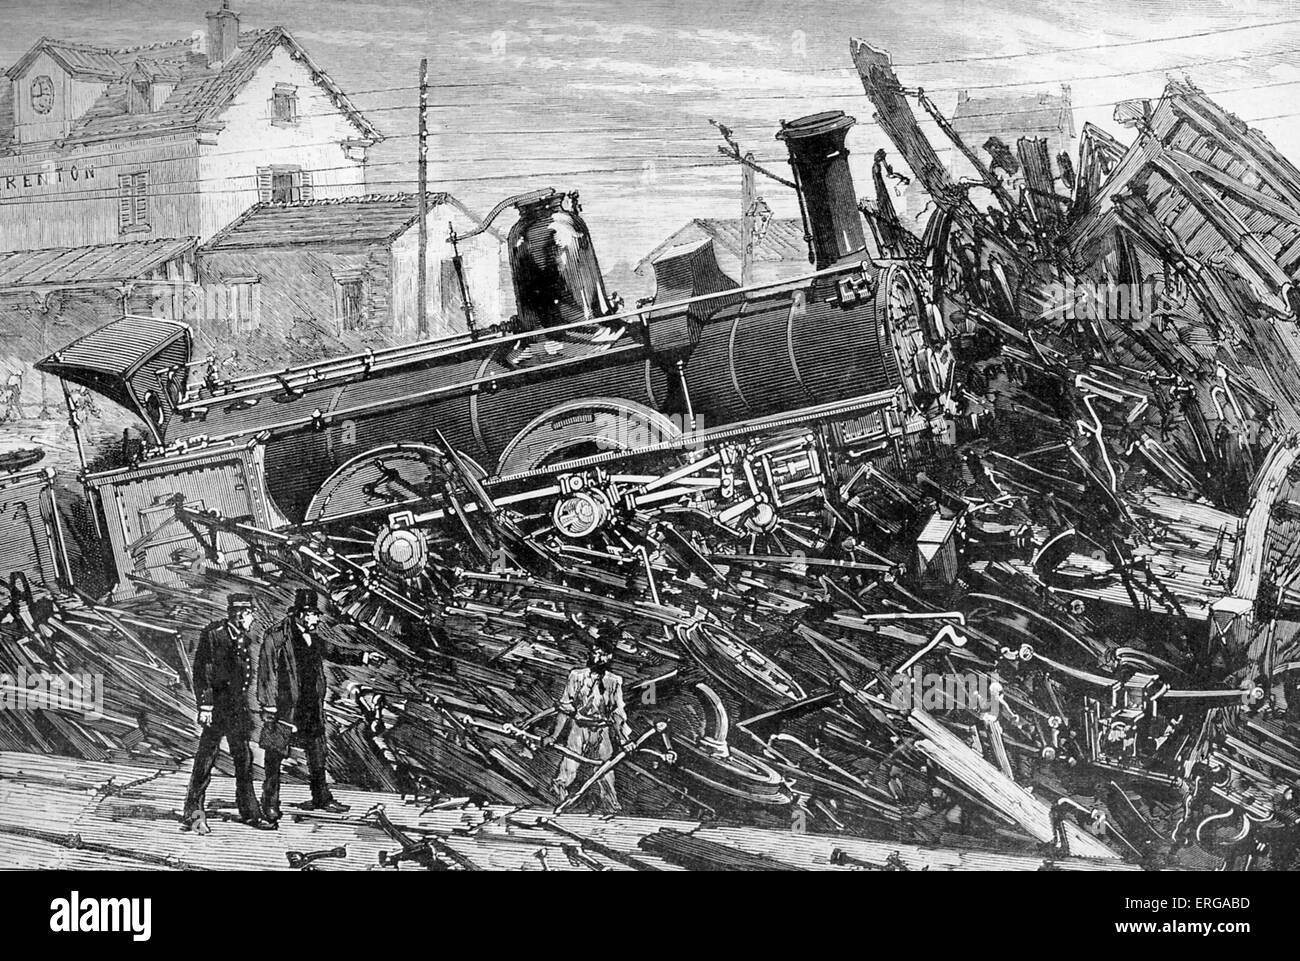 Sketch Of Accident Stock Photos & Sketch Of Accident Stock Images ...